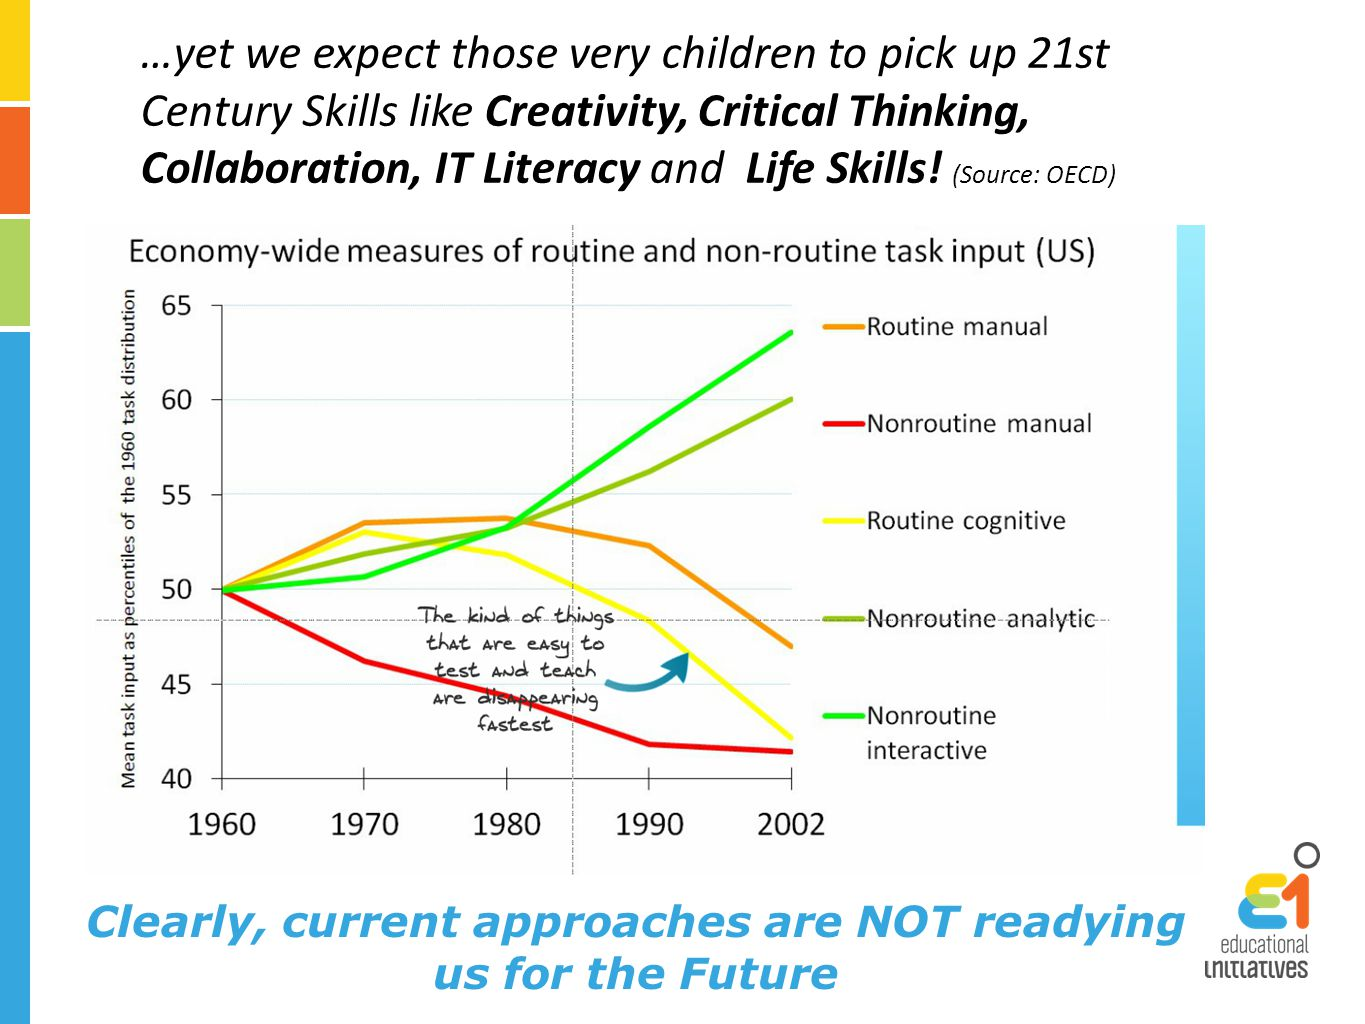 …yet we expect those very children to pick up 21st Century Skills like Creativity, Critical Thinking, Collaboration, IT Literacy and Life Skills.